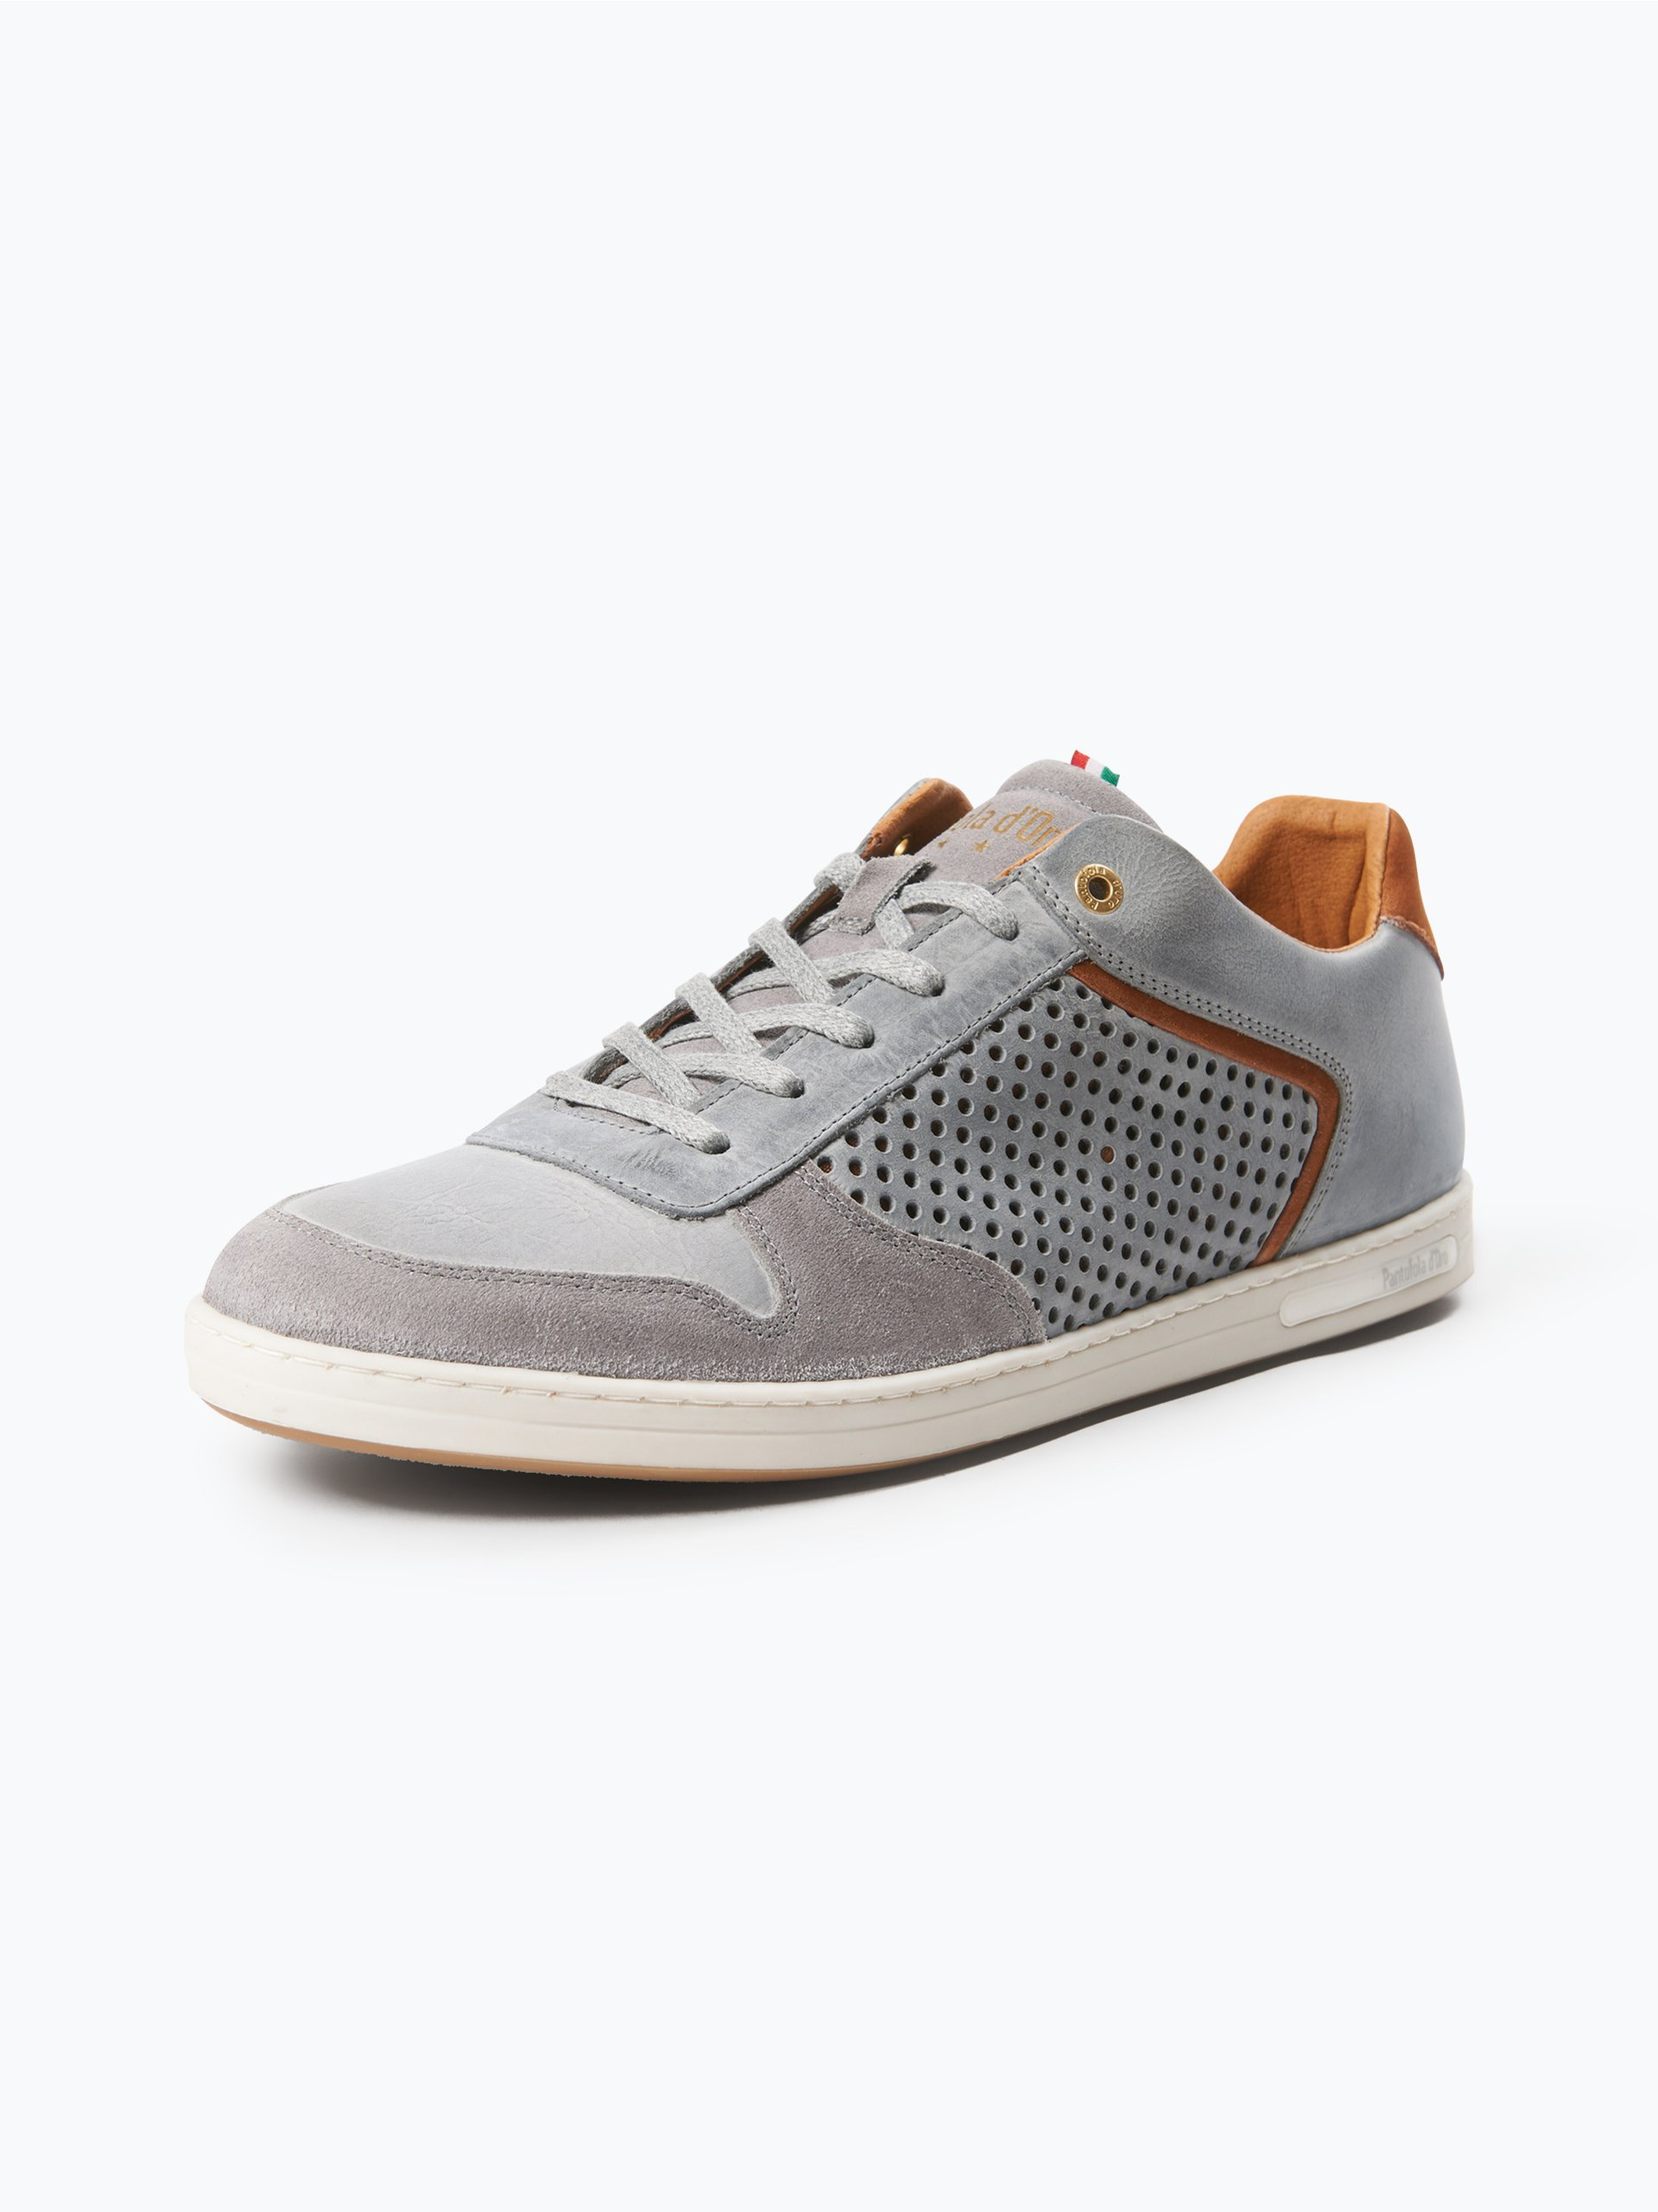 pantofola d oro herren sneaker aus leder auronzo grau. Black Bedroom Furniture Sets. Home Design Ideas